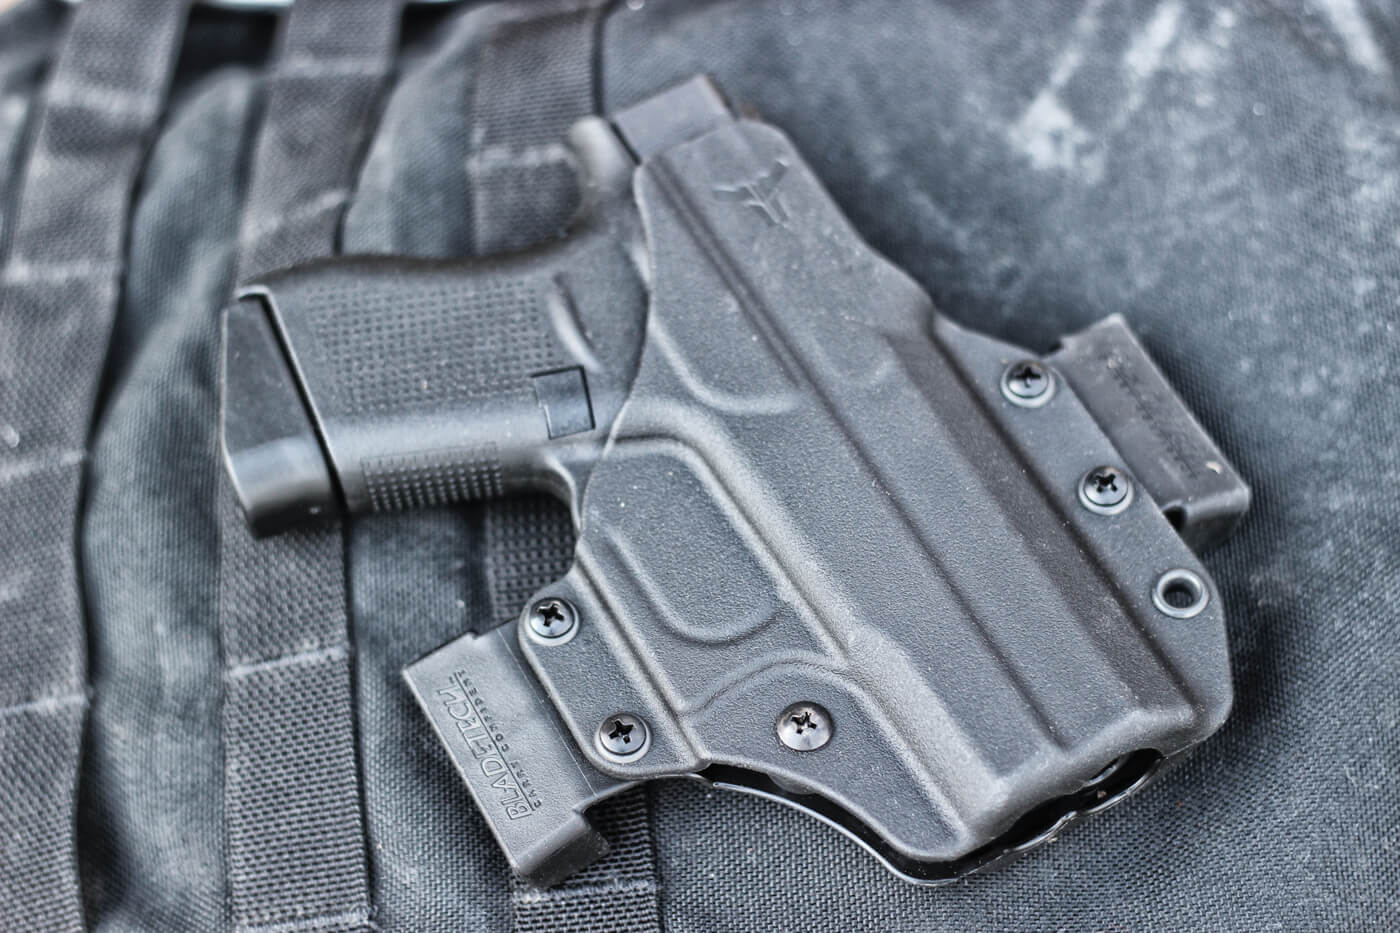 Glock 43 in Blade-Tech Eclipse OWB CCW holster